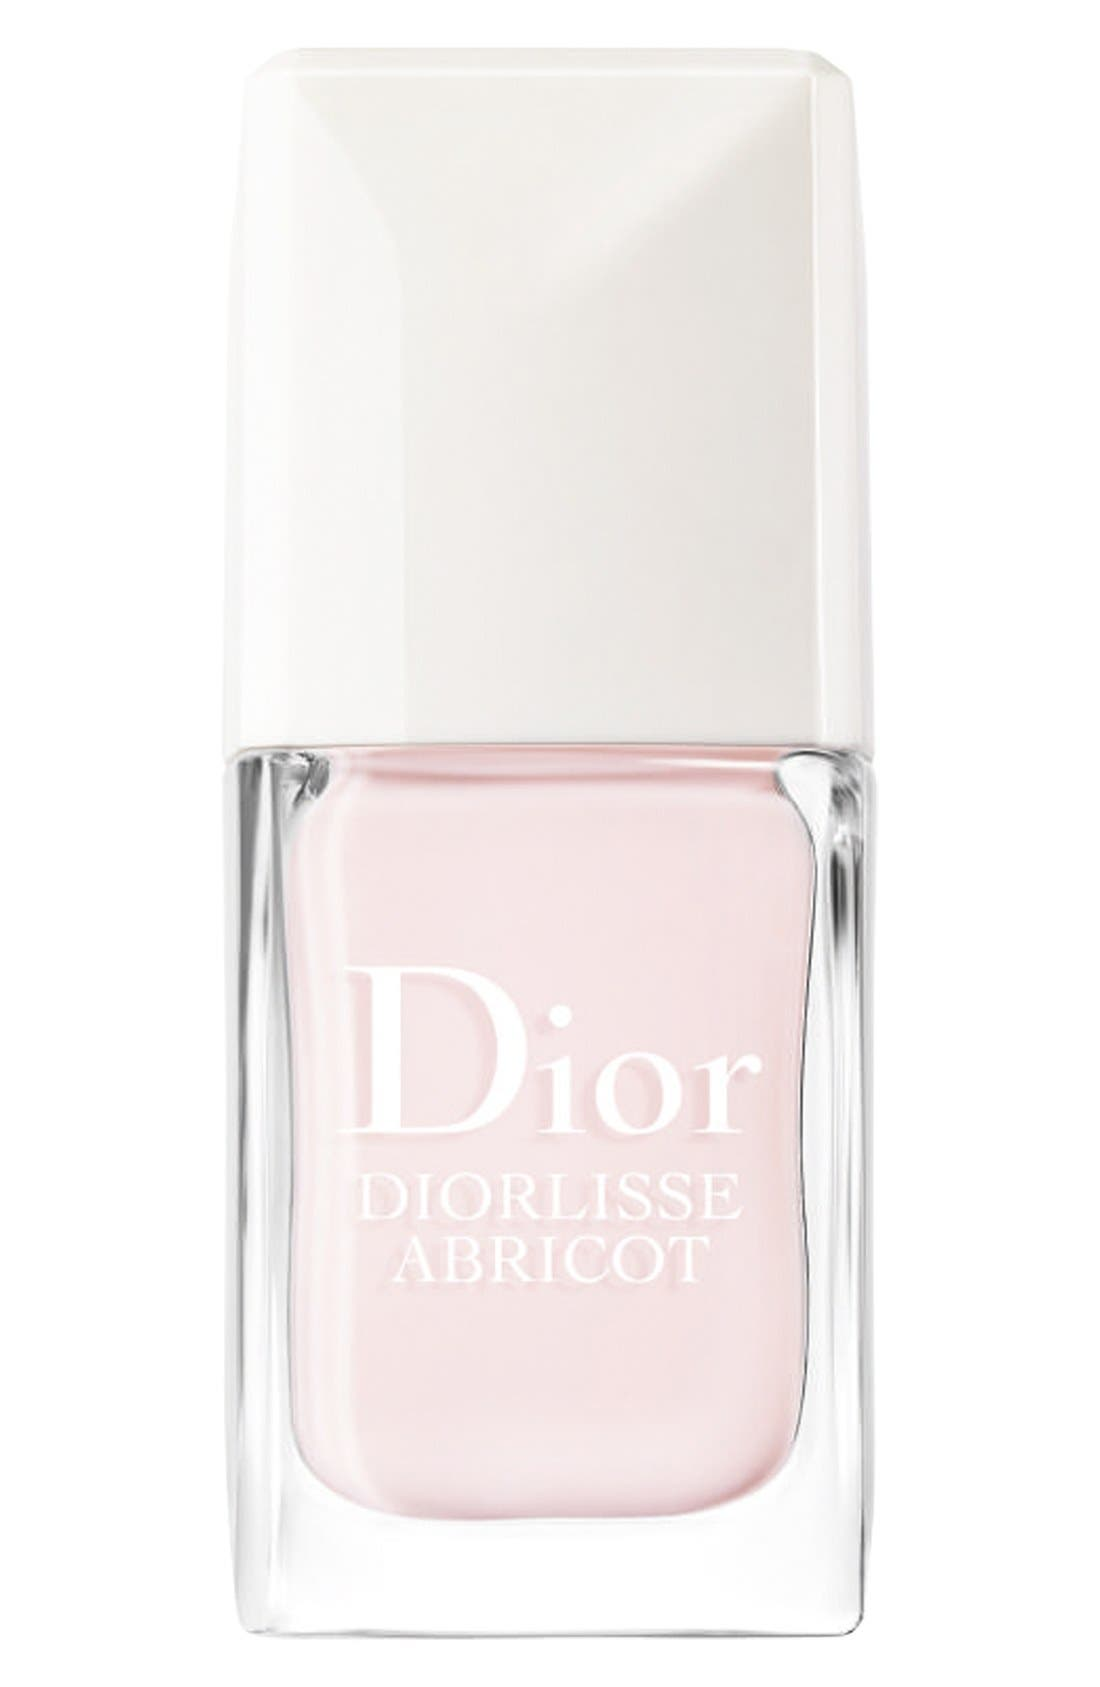 Dior Diorlisse Ridge Filler, .33 oz - Snow Pink 800